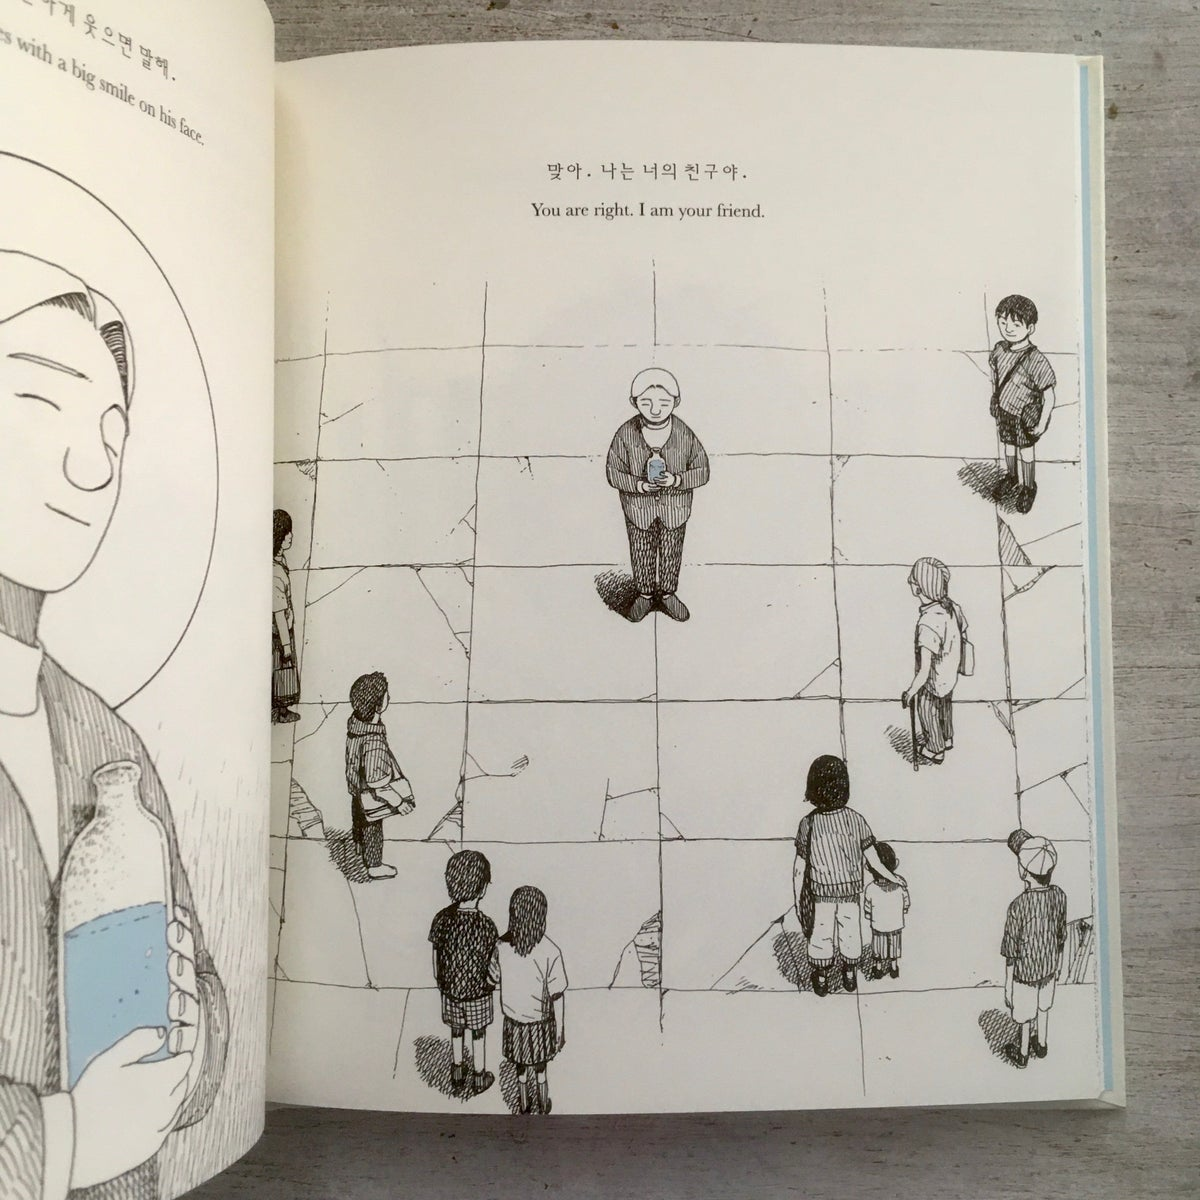 How can 무엇으로 - at noon books